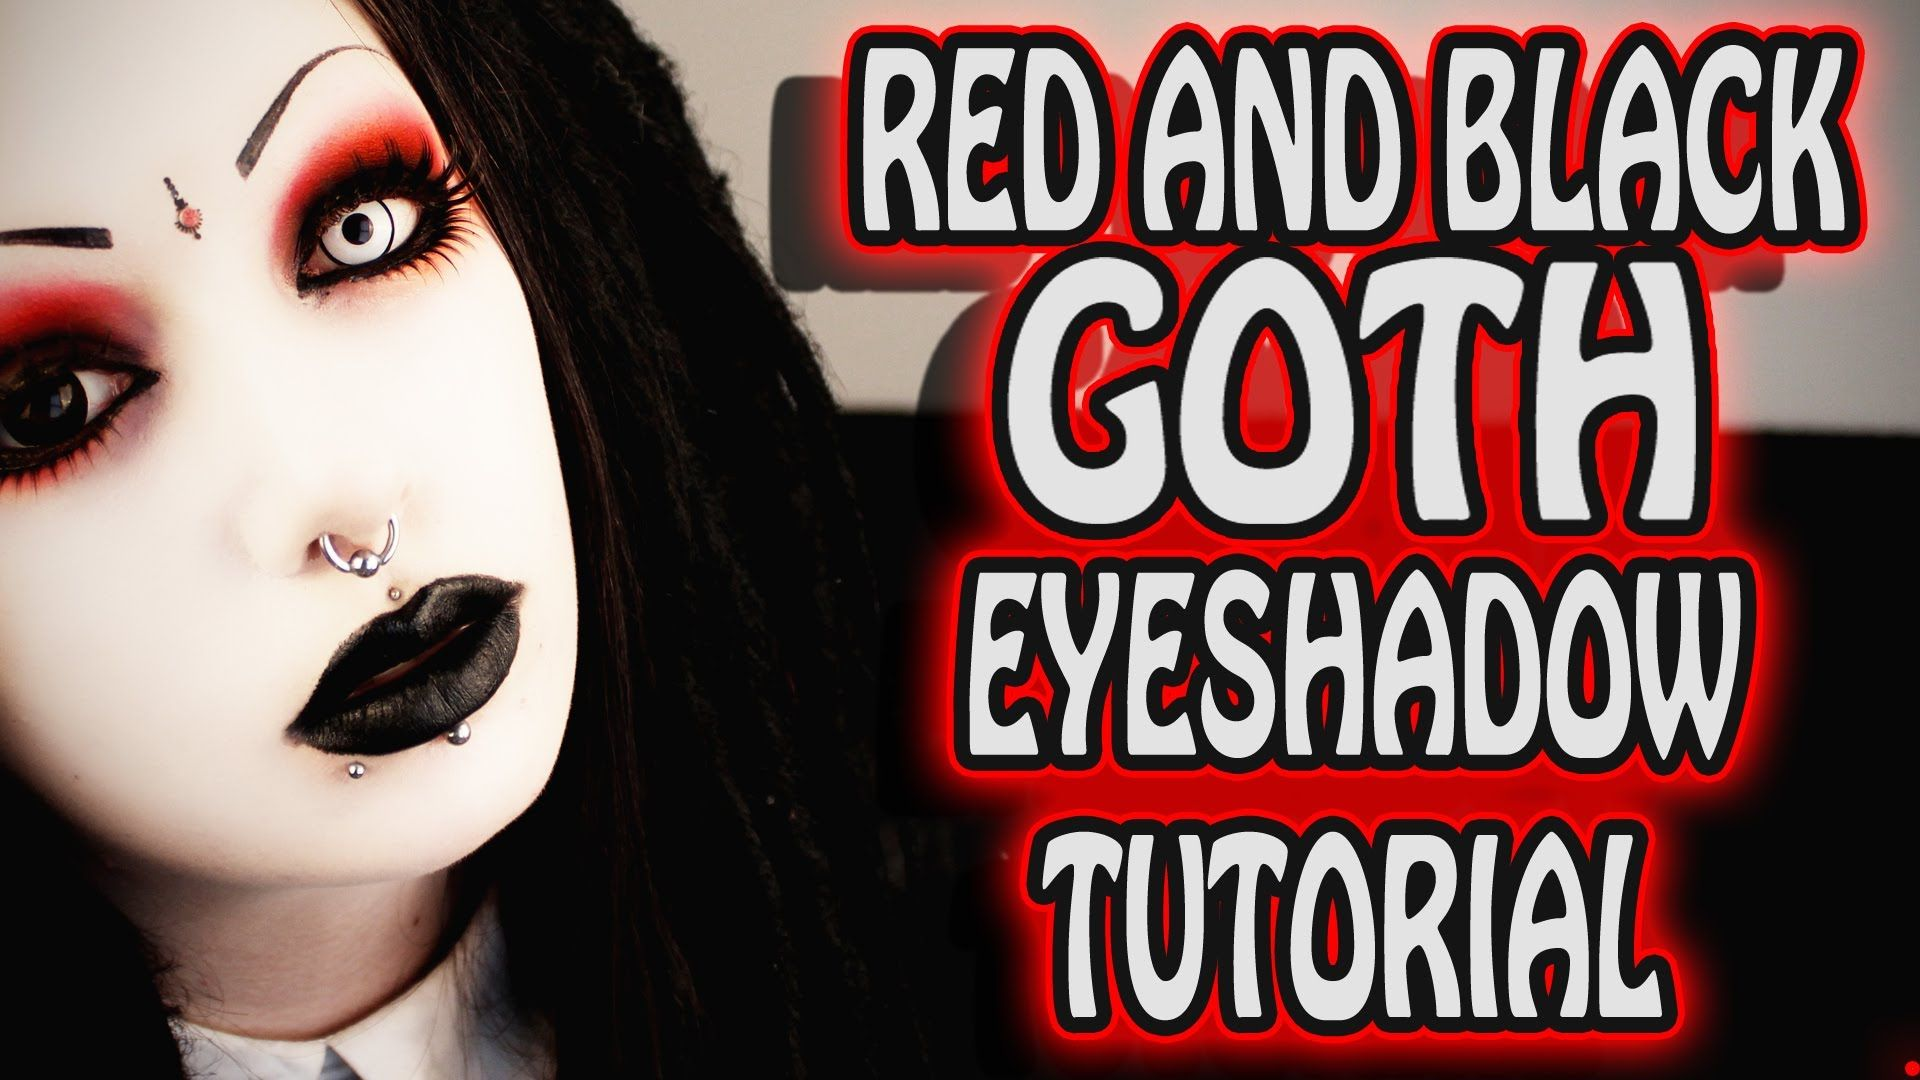 Awesome marilyn manson makeup eyelashes and contact lenses video awesome marilyn manson makeup eyelashes and contact lenses video tutorial by toxic tears baditri Choice Image